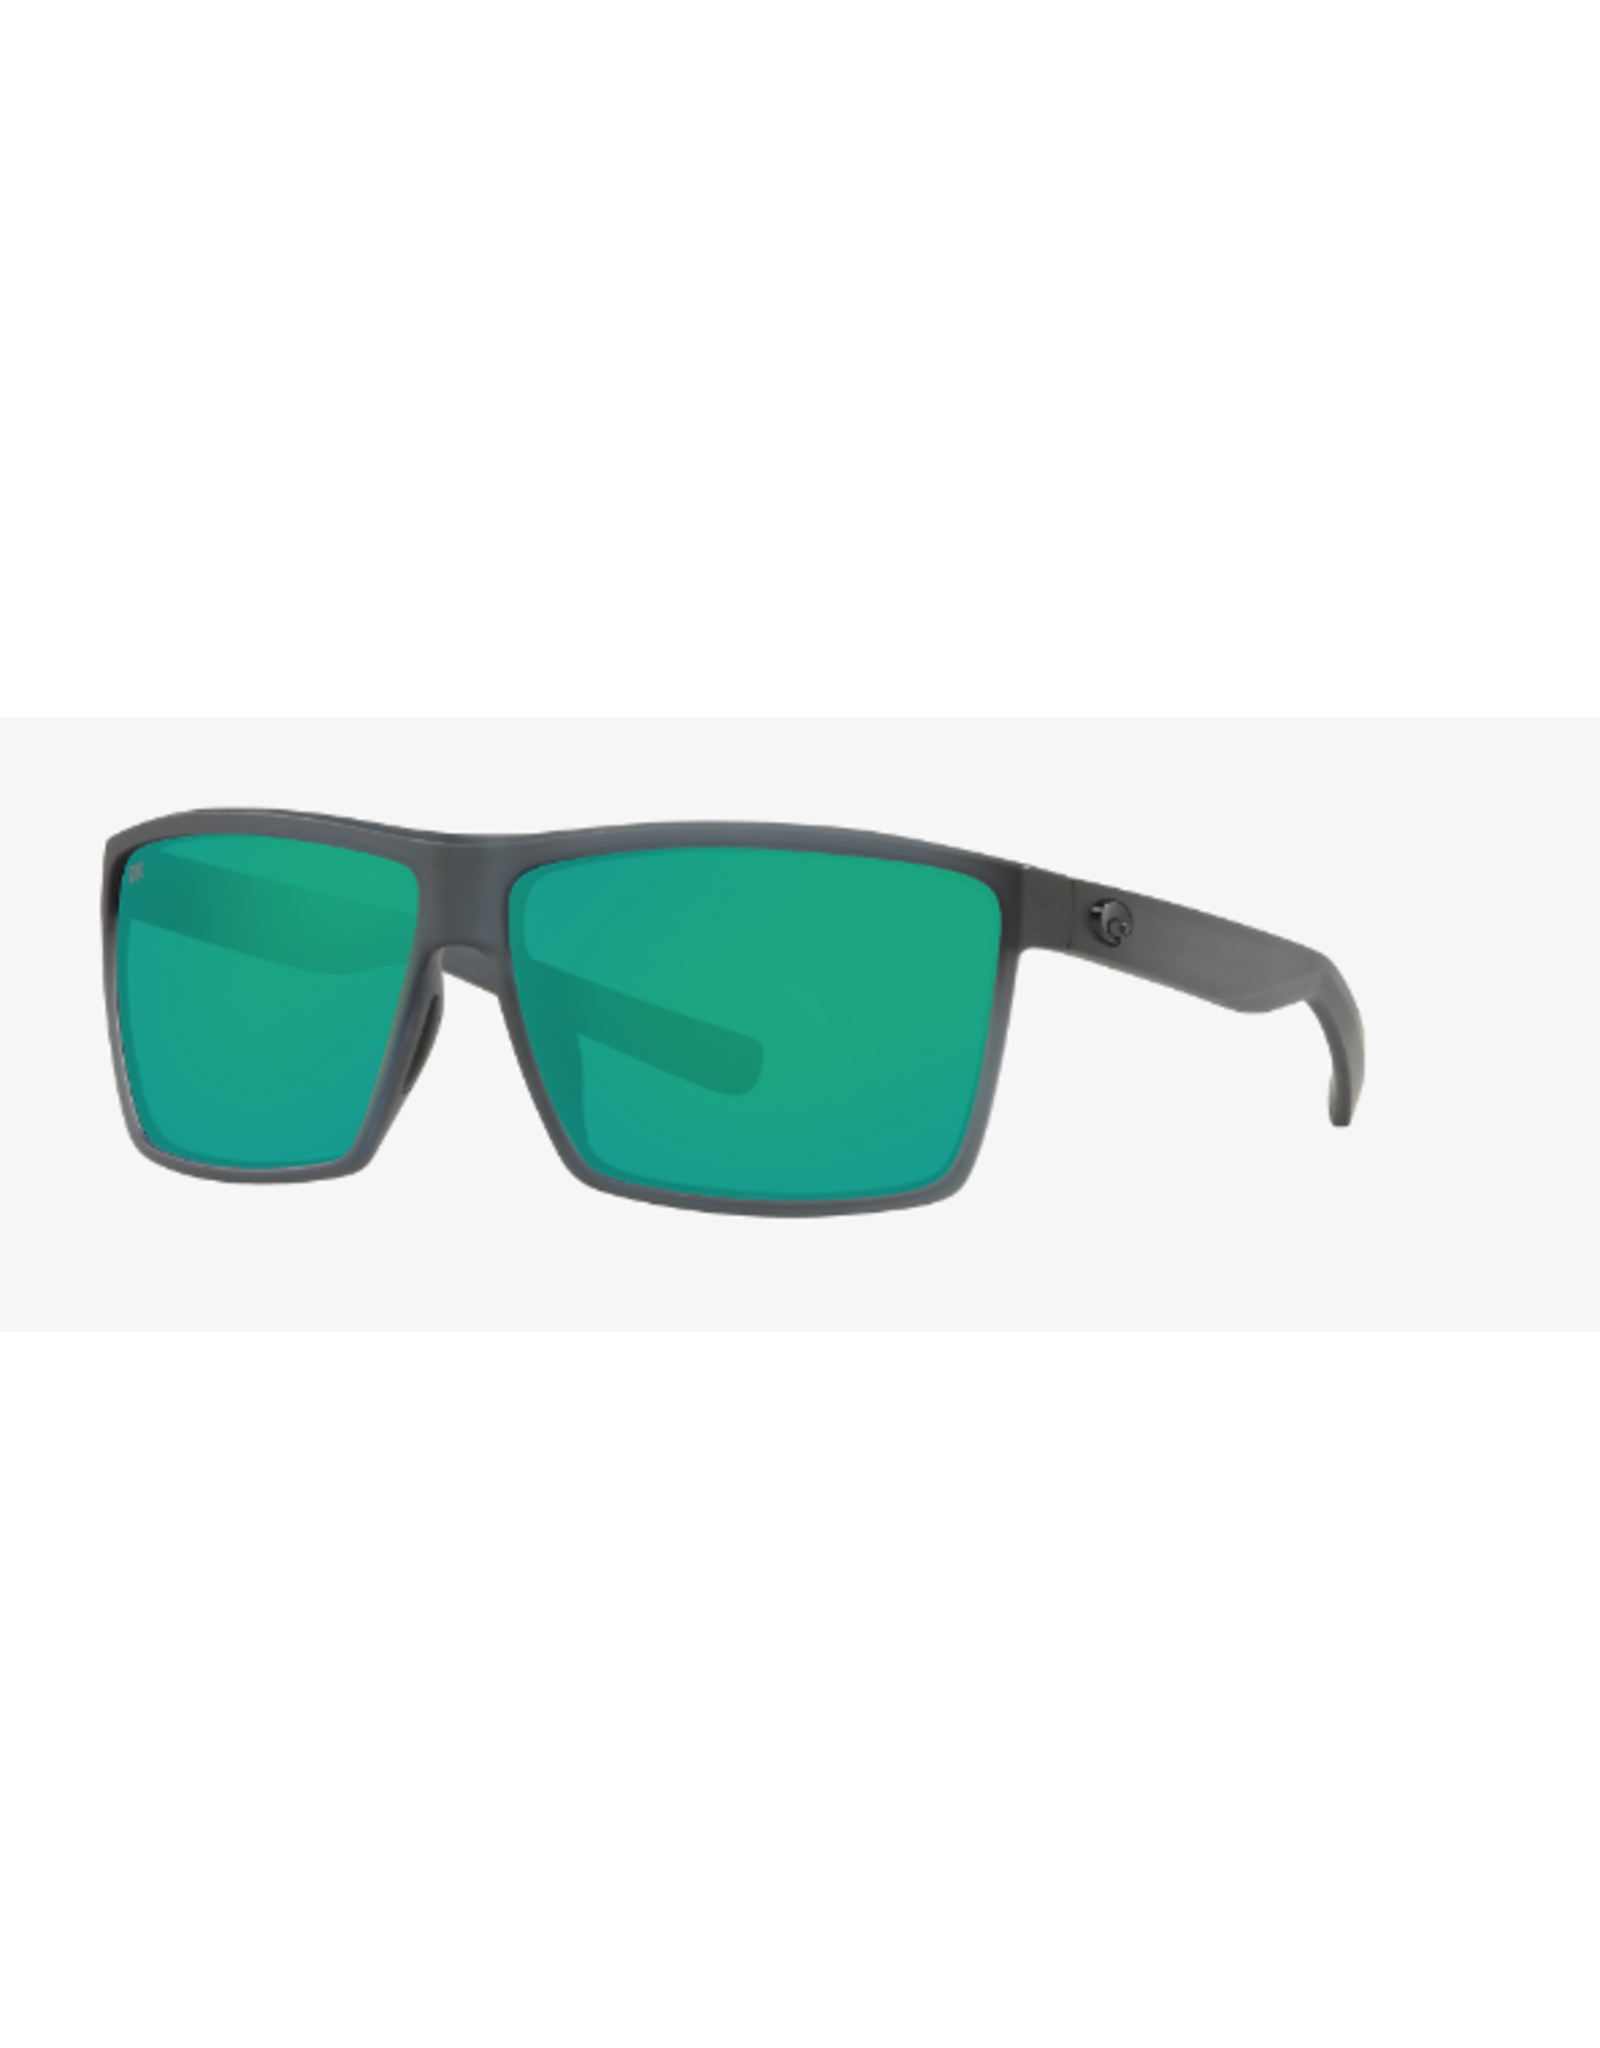 COSTA DEL MAR COSTA DEL MAR RINCOIN SUNGLASSES<br /> SEE IT STYLED<br /> YOUTUBE<br /> <br /> #STYLEDBYHIBBETT @HIBBETTSPORTS<br />  Add a photo<br /> Costa Del Mar Ocearch Rincon Sunglasses<br /> SEE IT STYLED<br /> YOUTUBE<br /> <br /> #STYLEDBYHIBBETT @HIBBETTSPORTS<br />  Add a photo<br /> Costa Del Mar Ocearch Rincon Sunglasses<br /> SEE IT